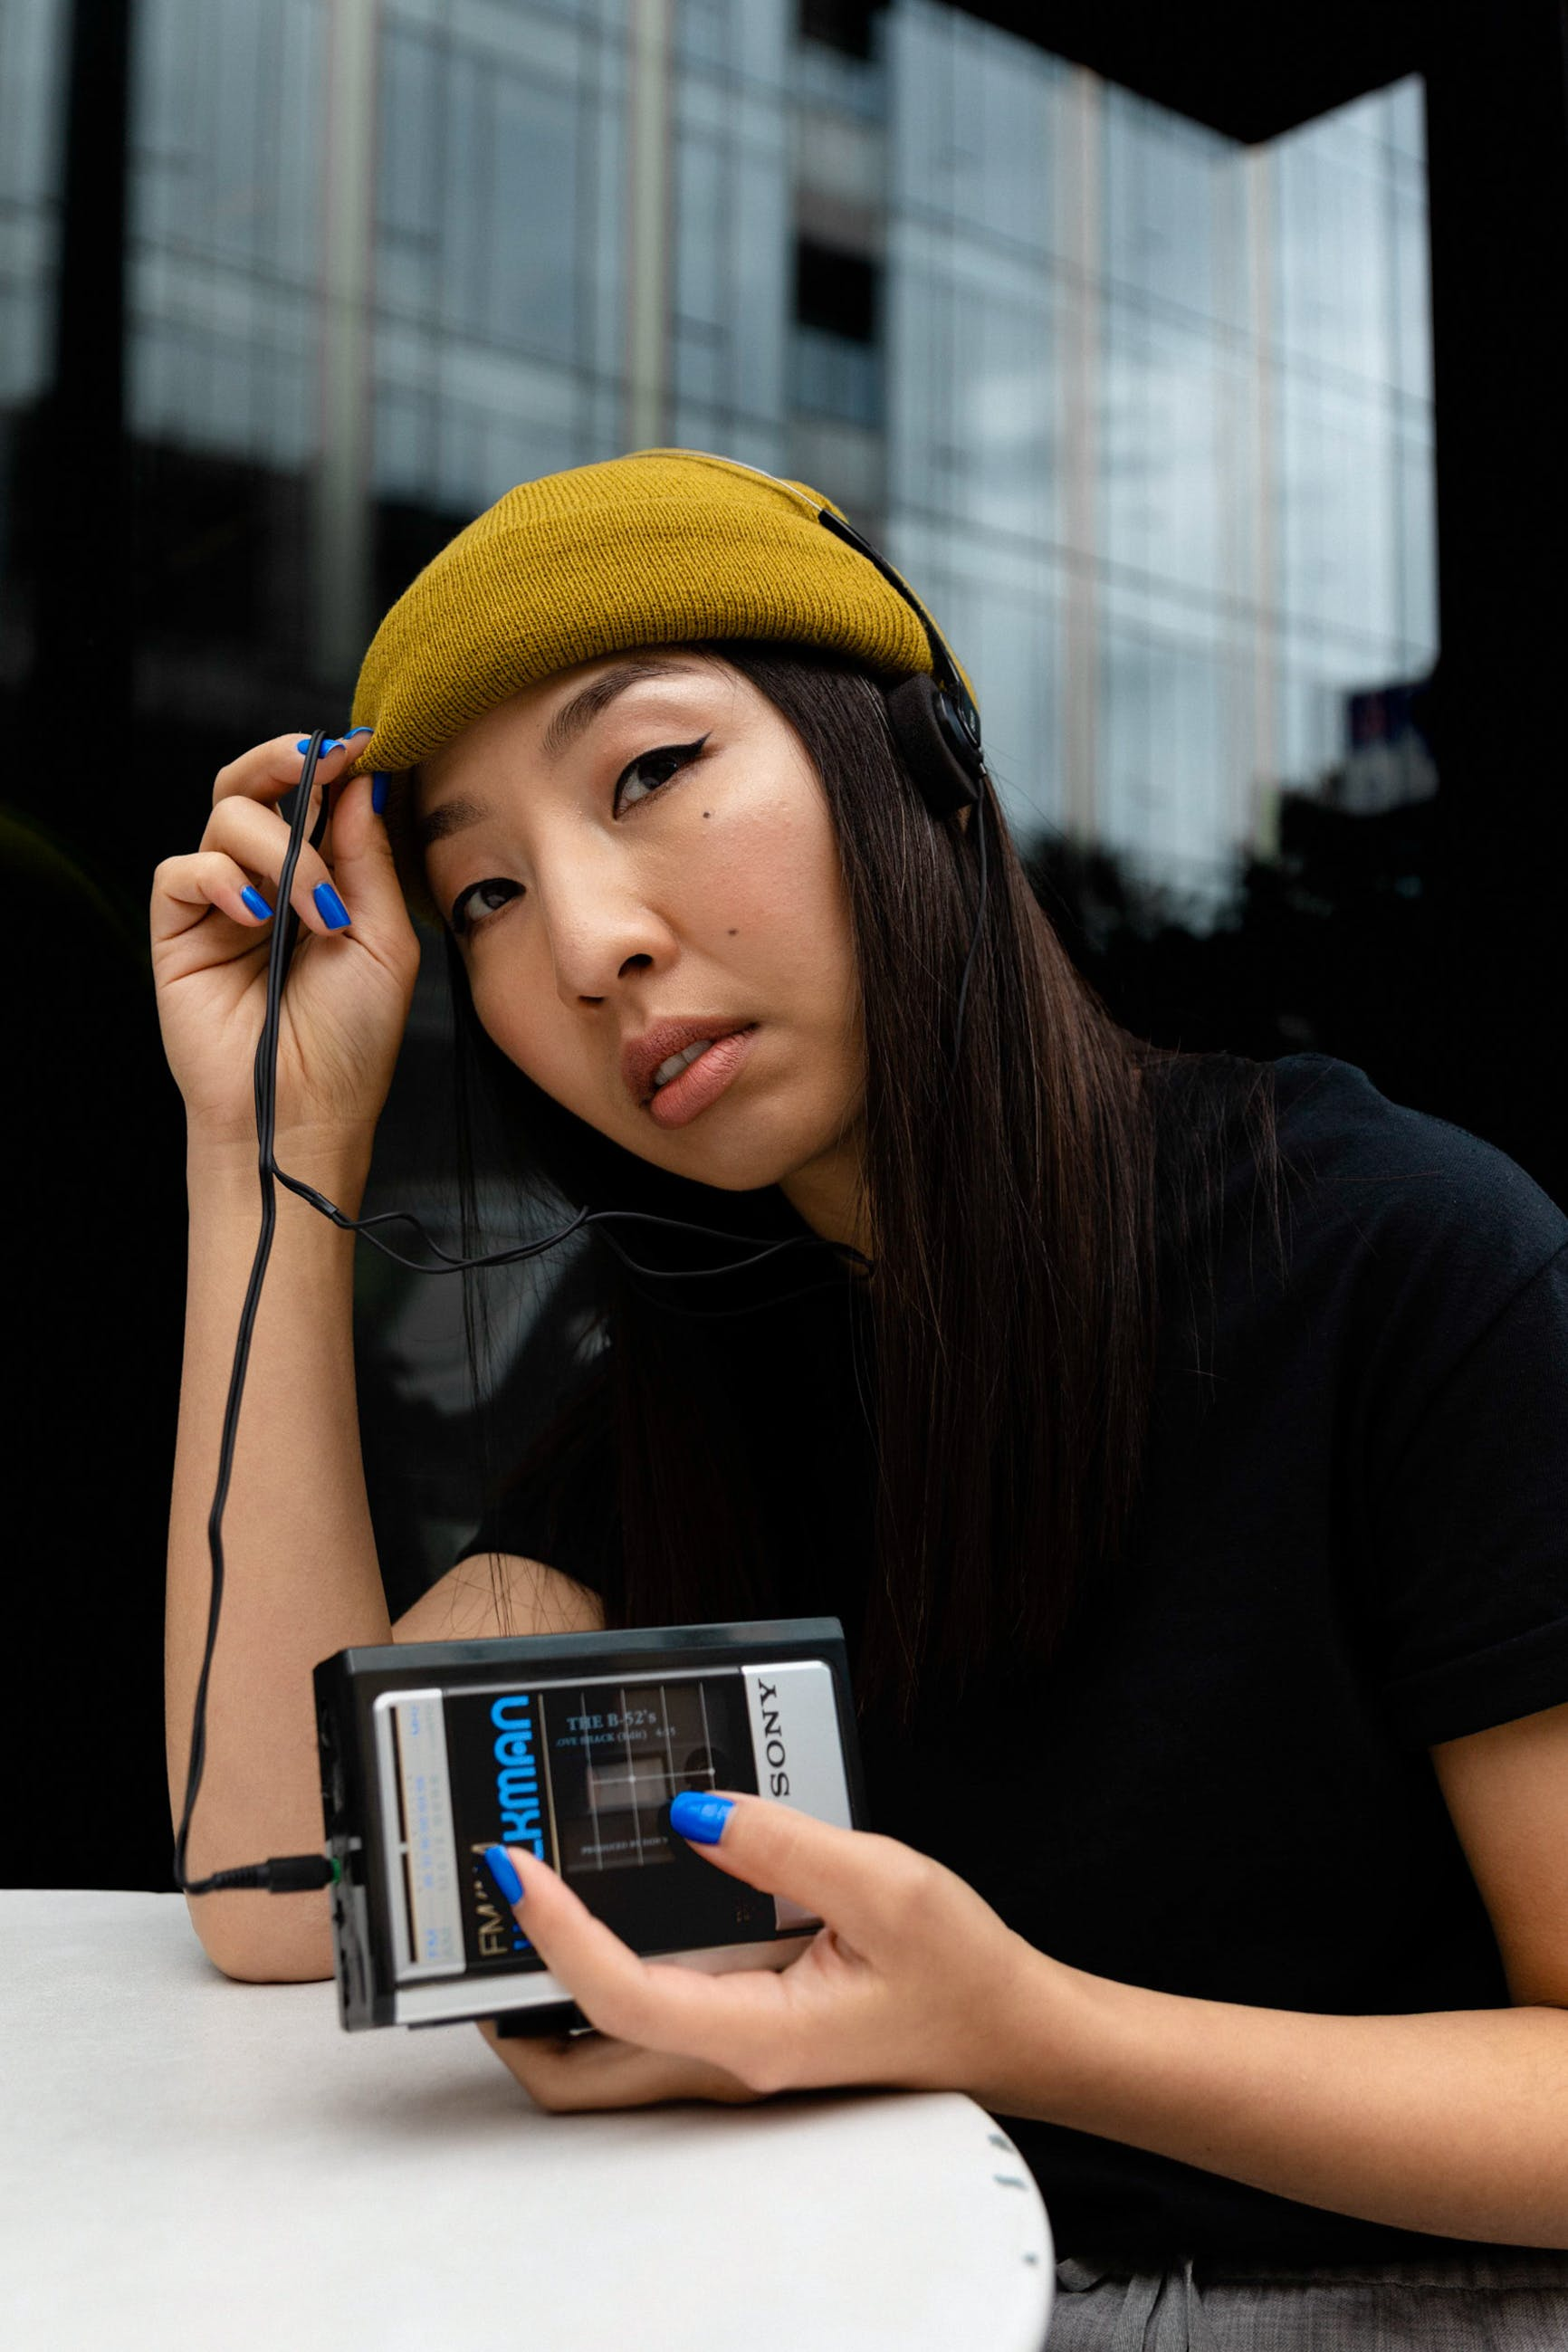 Woman Sitting and Using Sony Walkman Portable Music Player